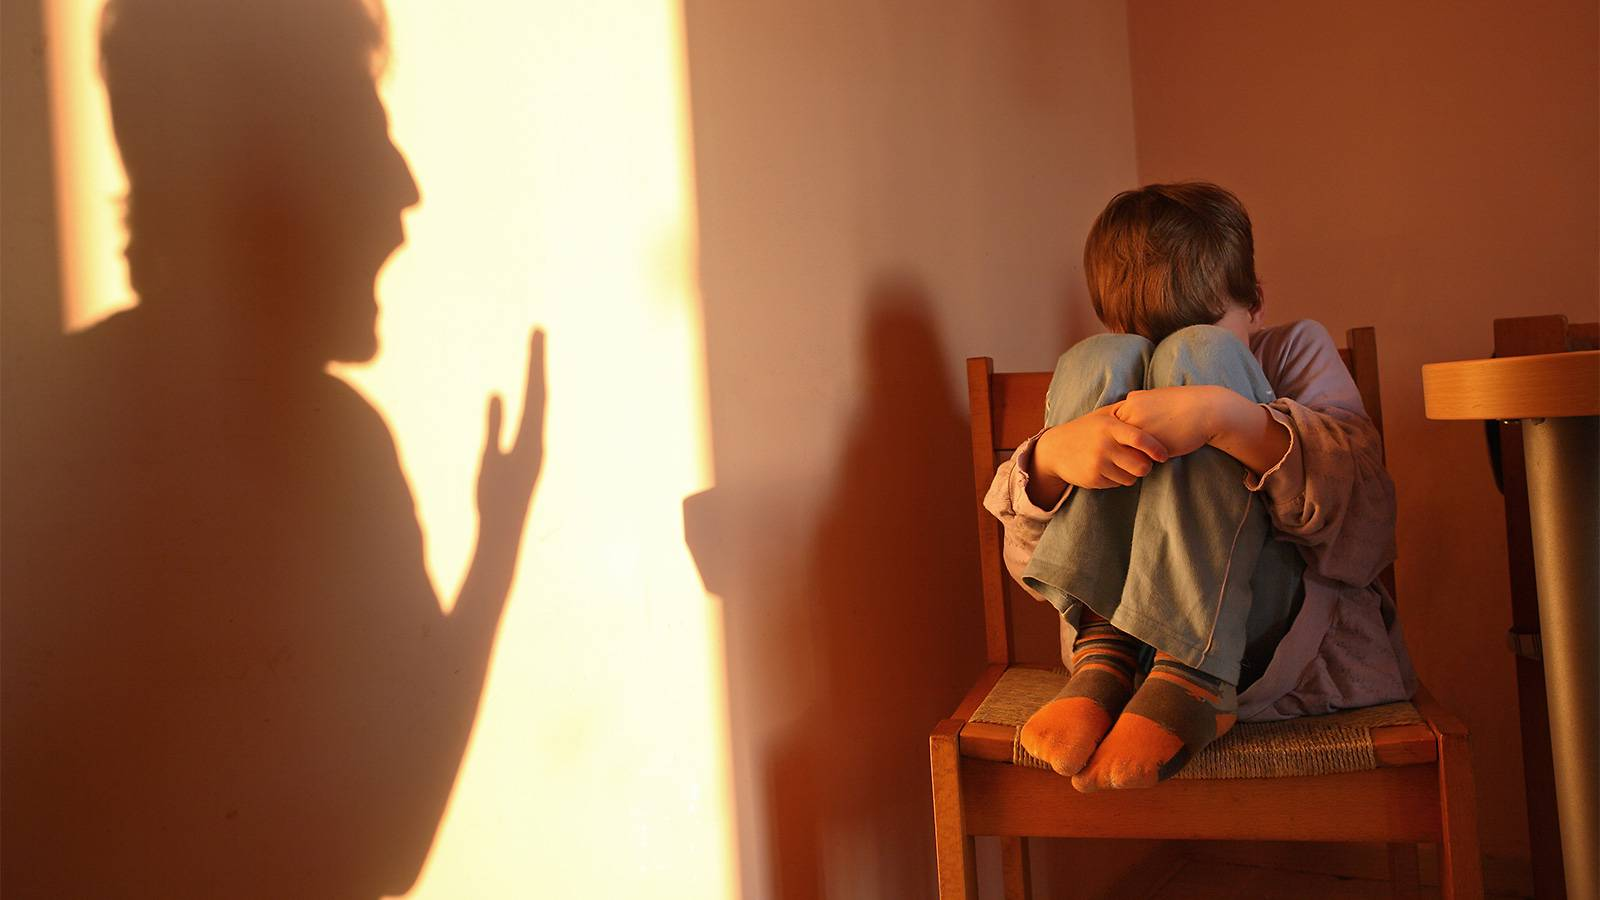 Parents--Parental-burnout-7-warning-signs-and-how-to-cope-2